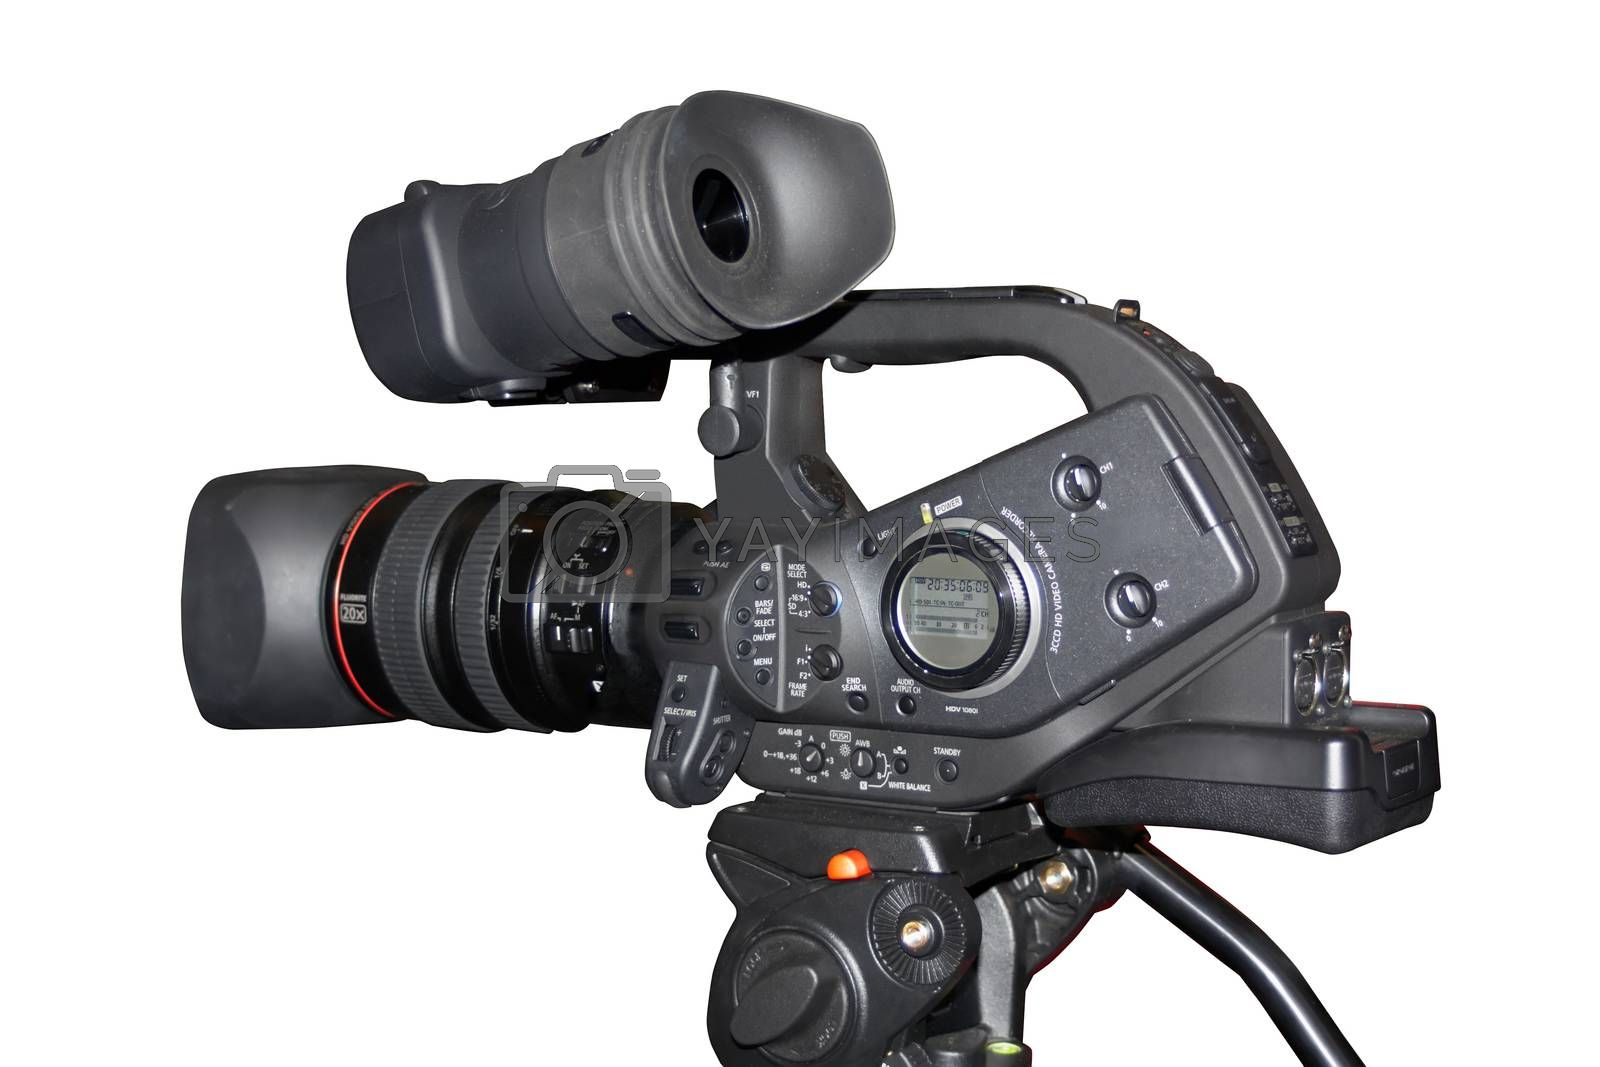 professional digital camcorder on a tripod on a white background